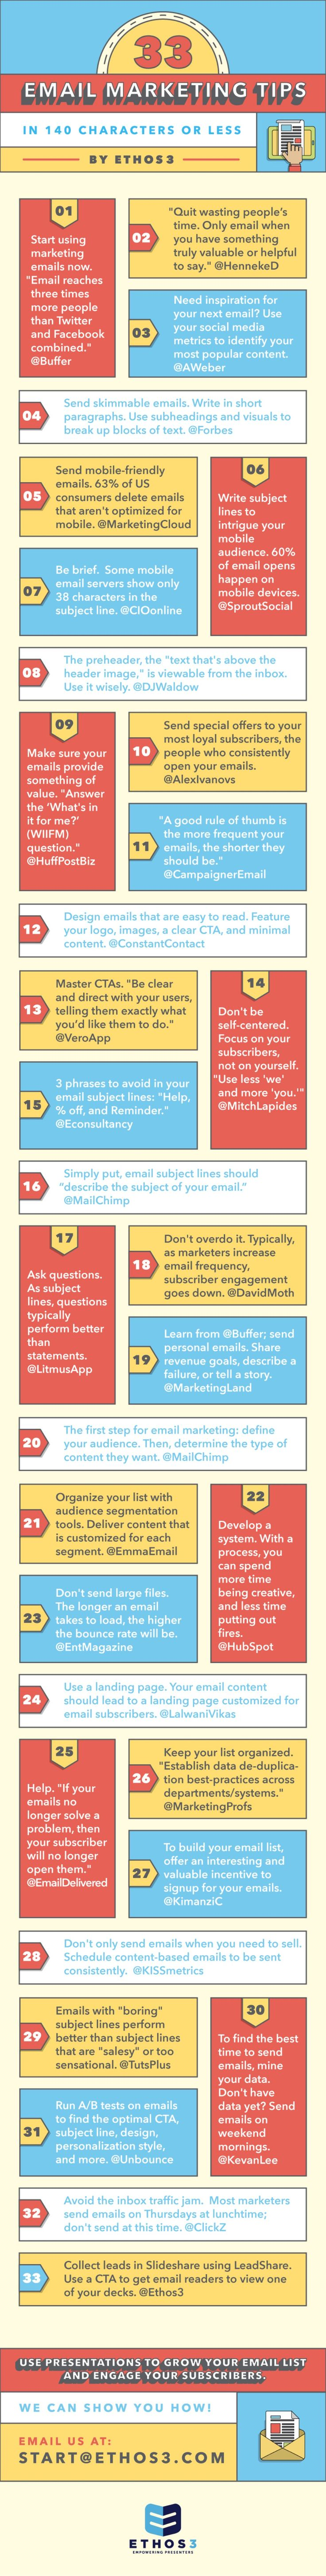 33 Email Marketing Tips, in 140 characters or less by Ethos3 | Presentation Design and Training via slideshare